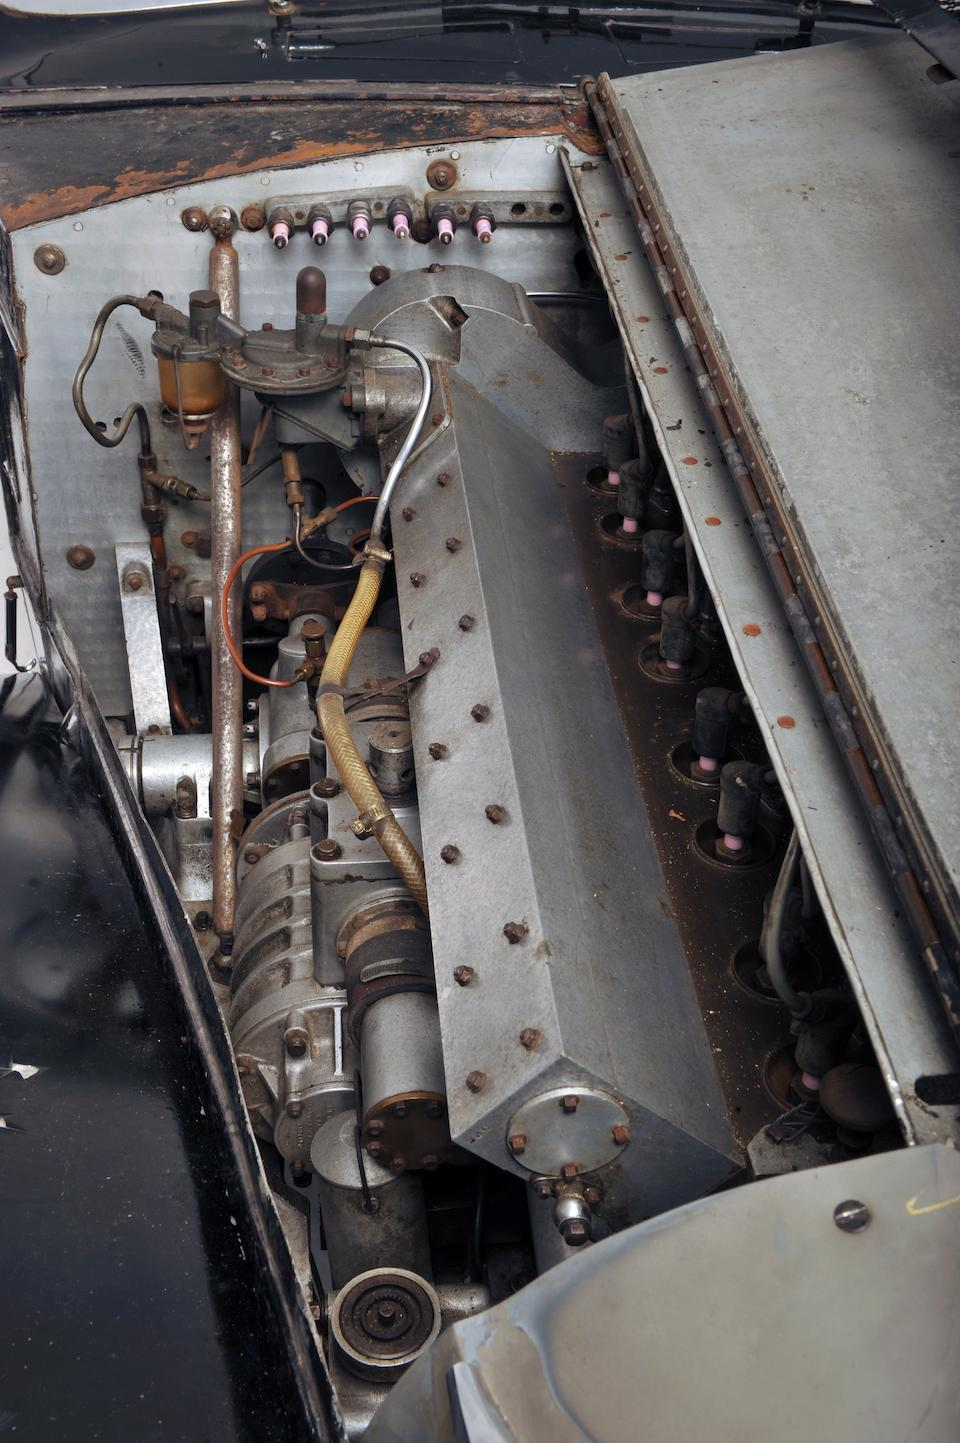 Originally the property of Francis Curzon, The 5th Earl Howe, CBE, PC, VD.,1937 Bugatti Type 57S Atalante Coupé  Chassis no. 57502 Engine no. 26S